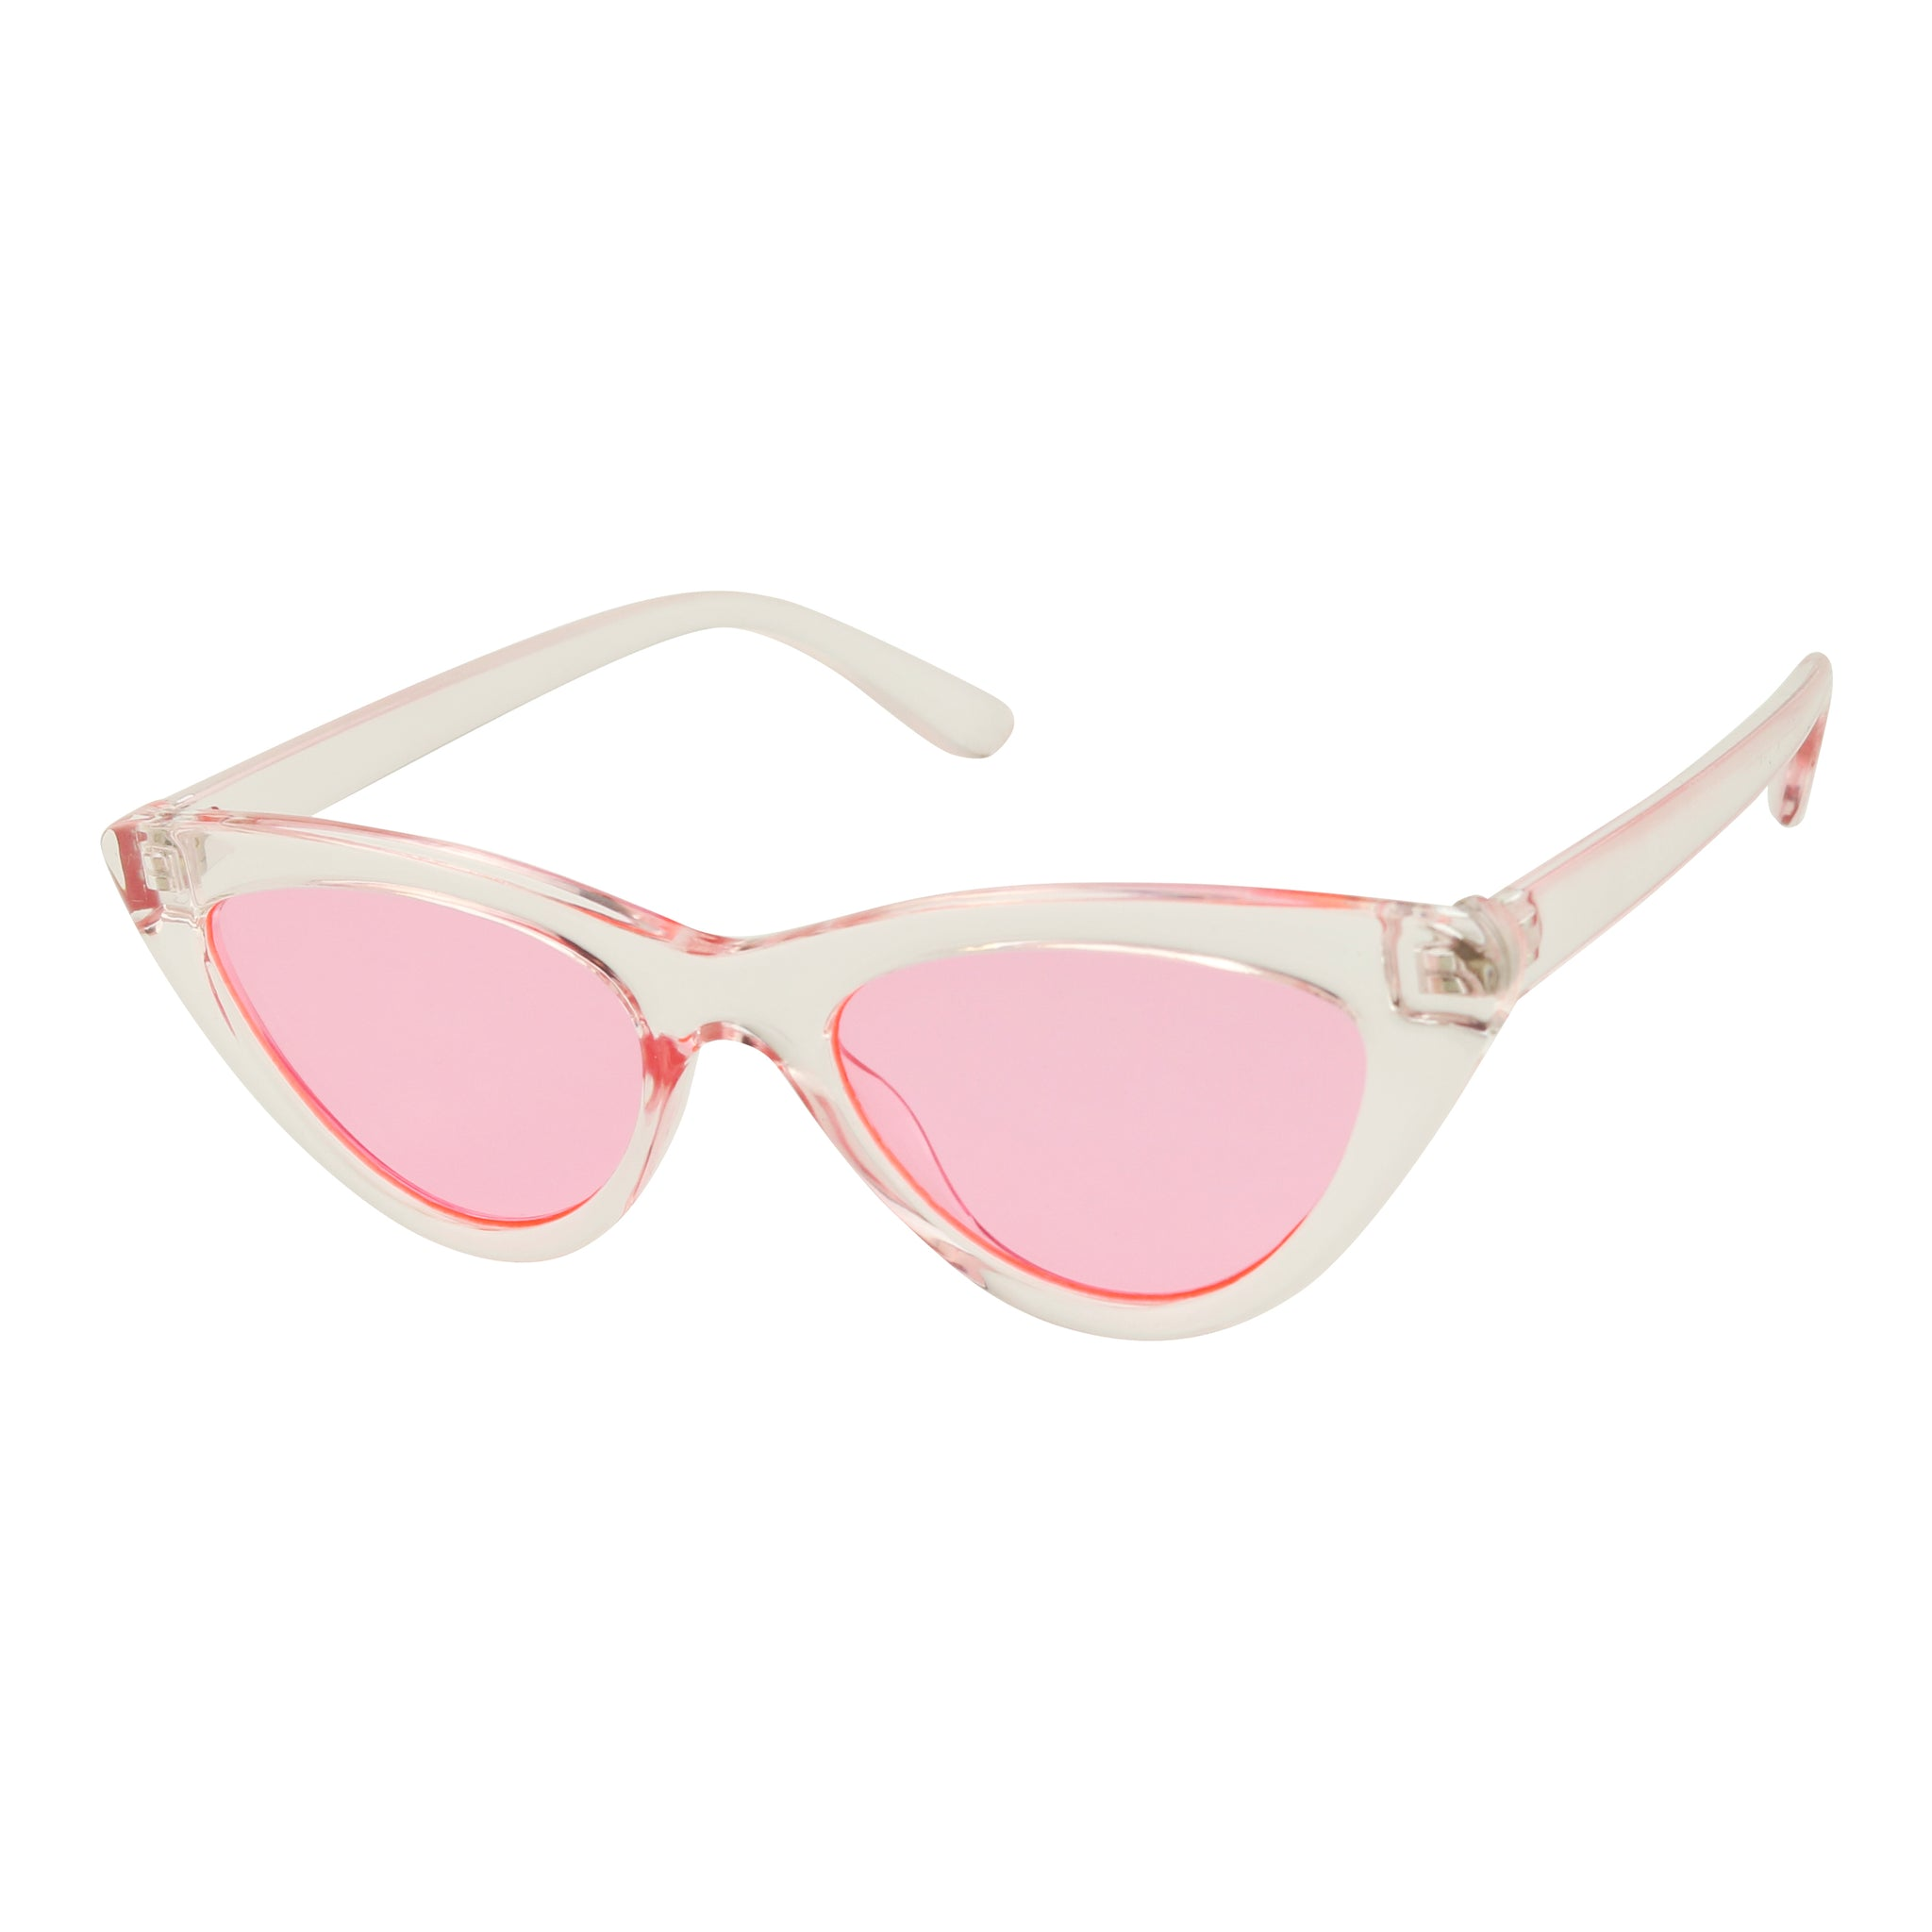 ALISON Candy Colors High Point Clear Tinted Cat Eye Sunglasses - ShadyVEU